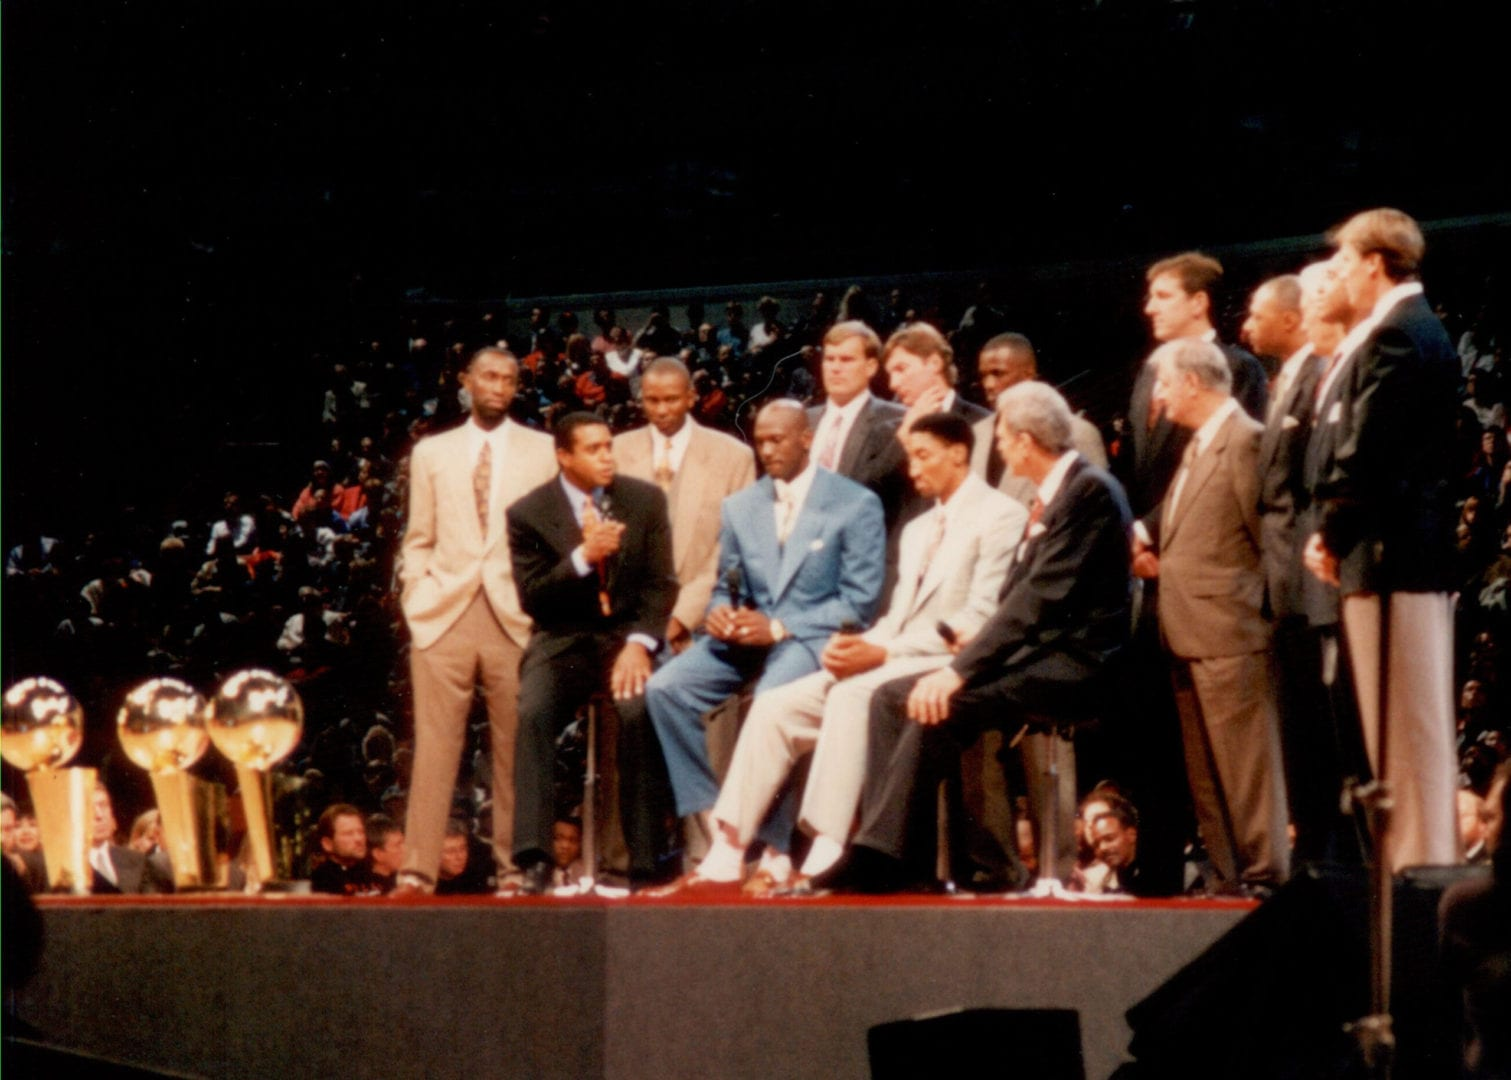 MJ on stage during his retirement